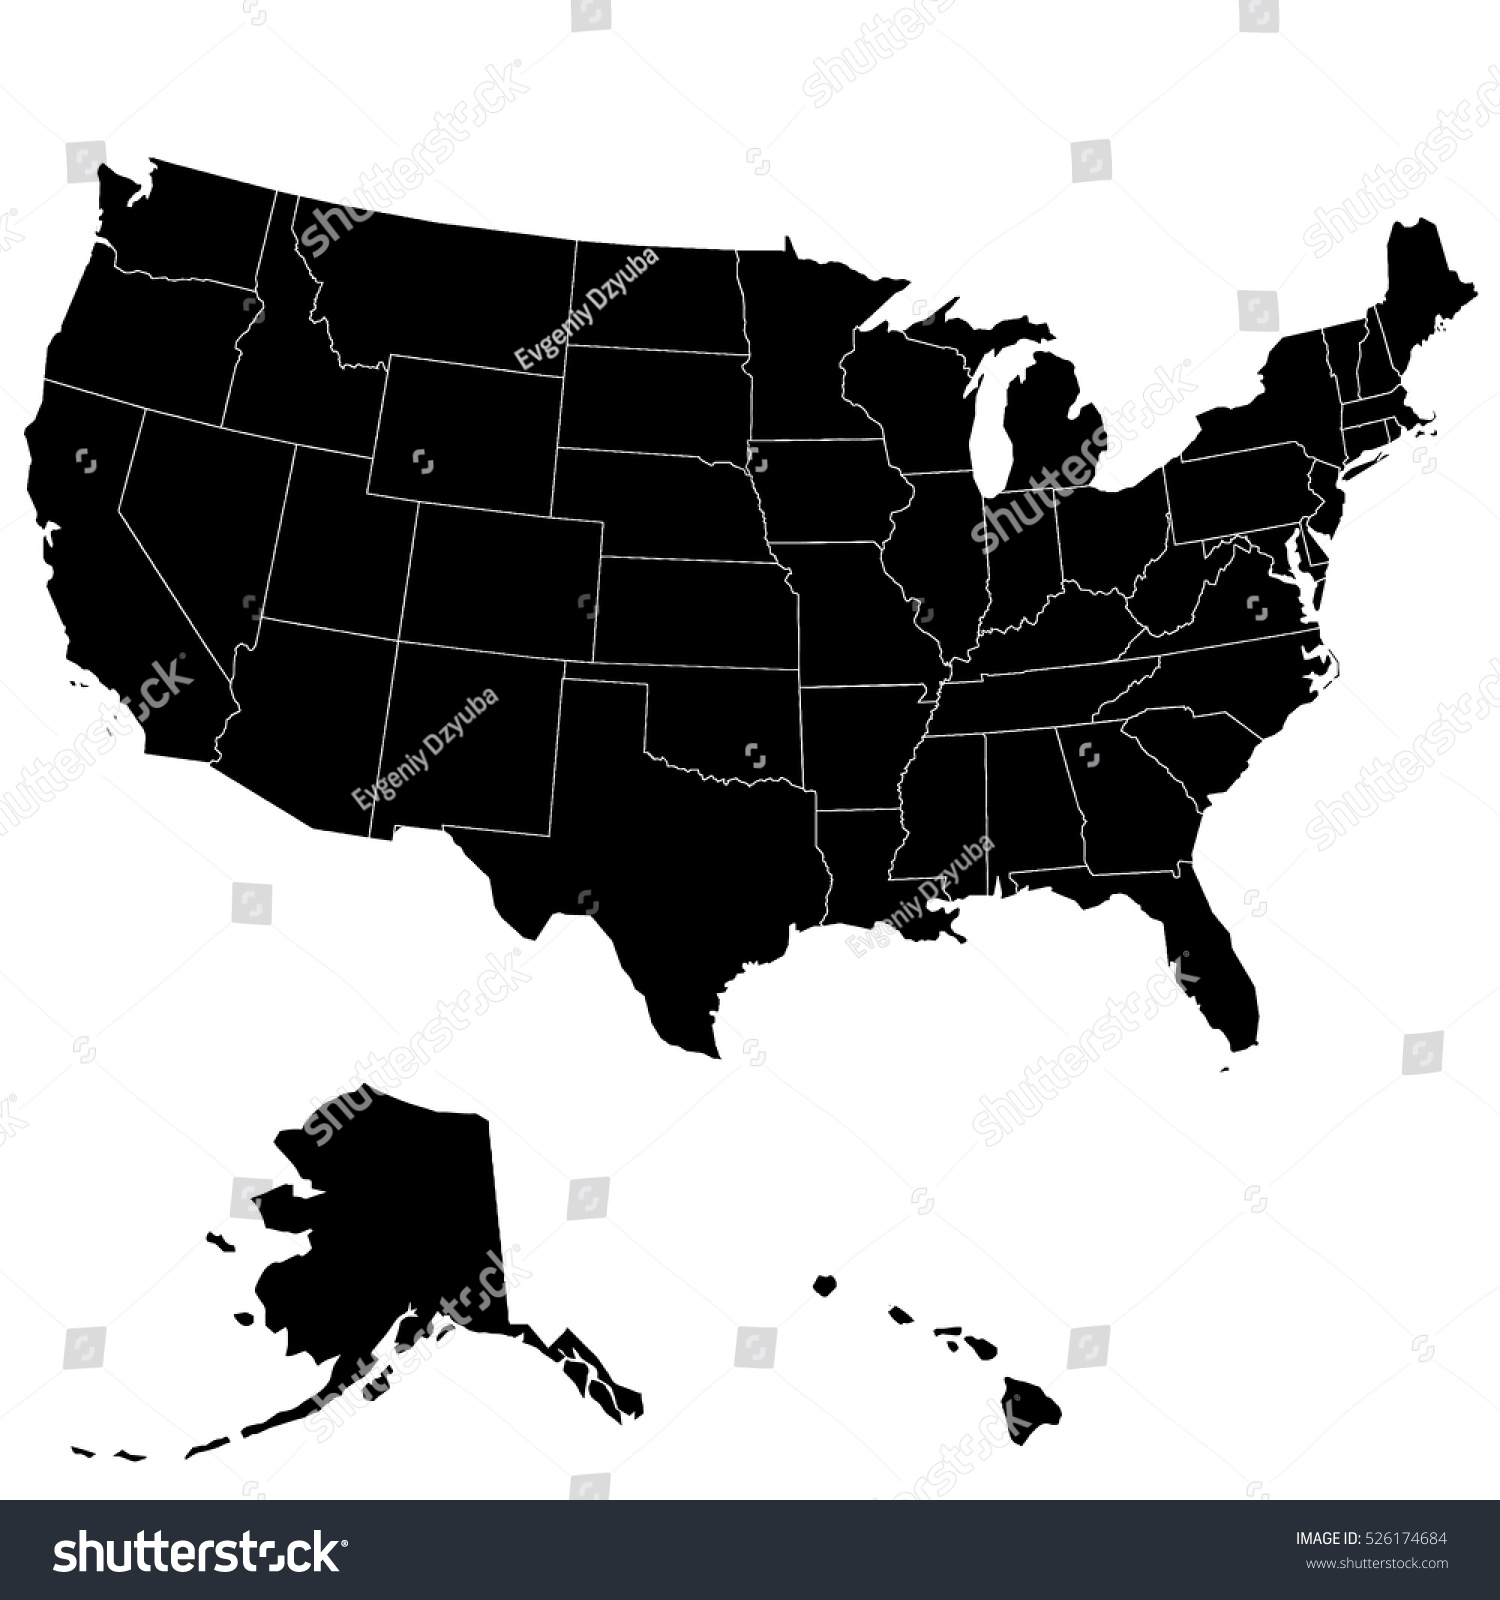 """You probably woke up this morning with big plans to """"really make some changes this year,"""" but you know what? Map United States America High Accuracy Stock Vector Royalty Free 526174684"""